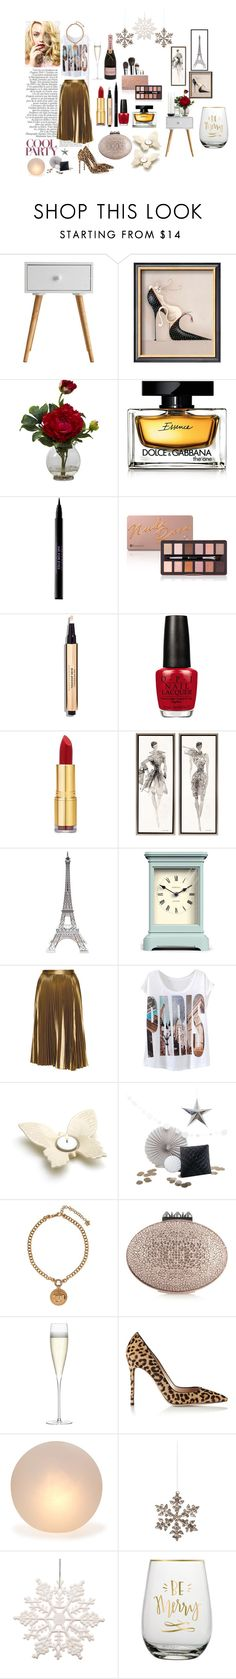 """Party mood."" by manette-burrell ❤ liked on Polyvore featuring Nearly Natural, Dolce&Gabbana, Urban Decay, OPI, Isaac Mizrahi, Chanel, Merci Gustave!, Newgate, A.L.C. and ACME Party Box Company"